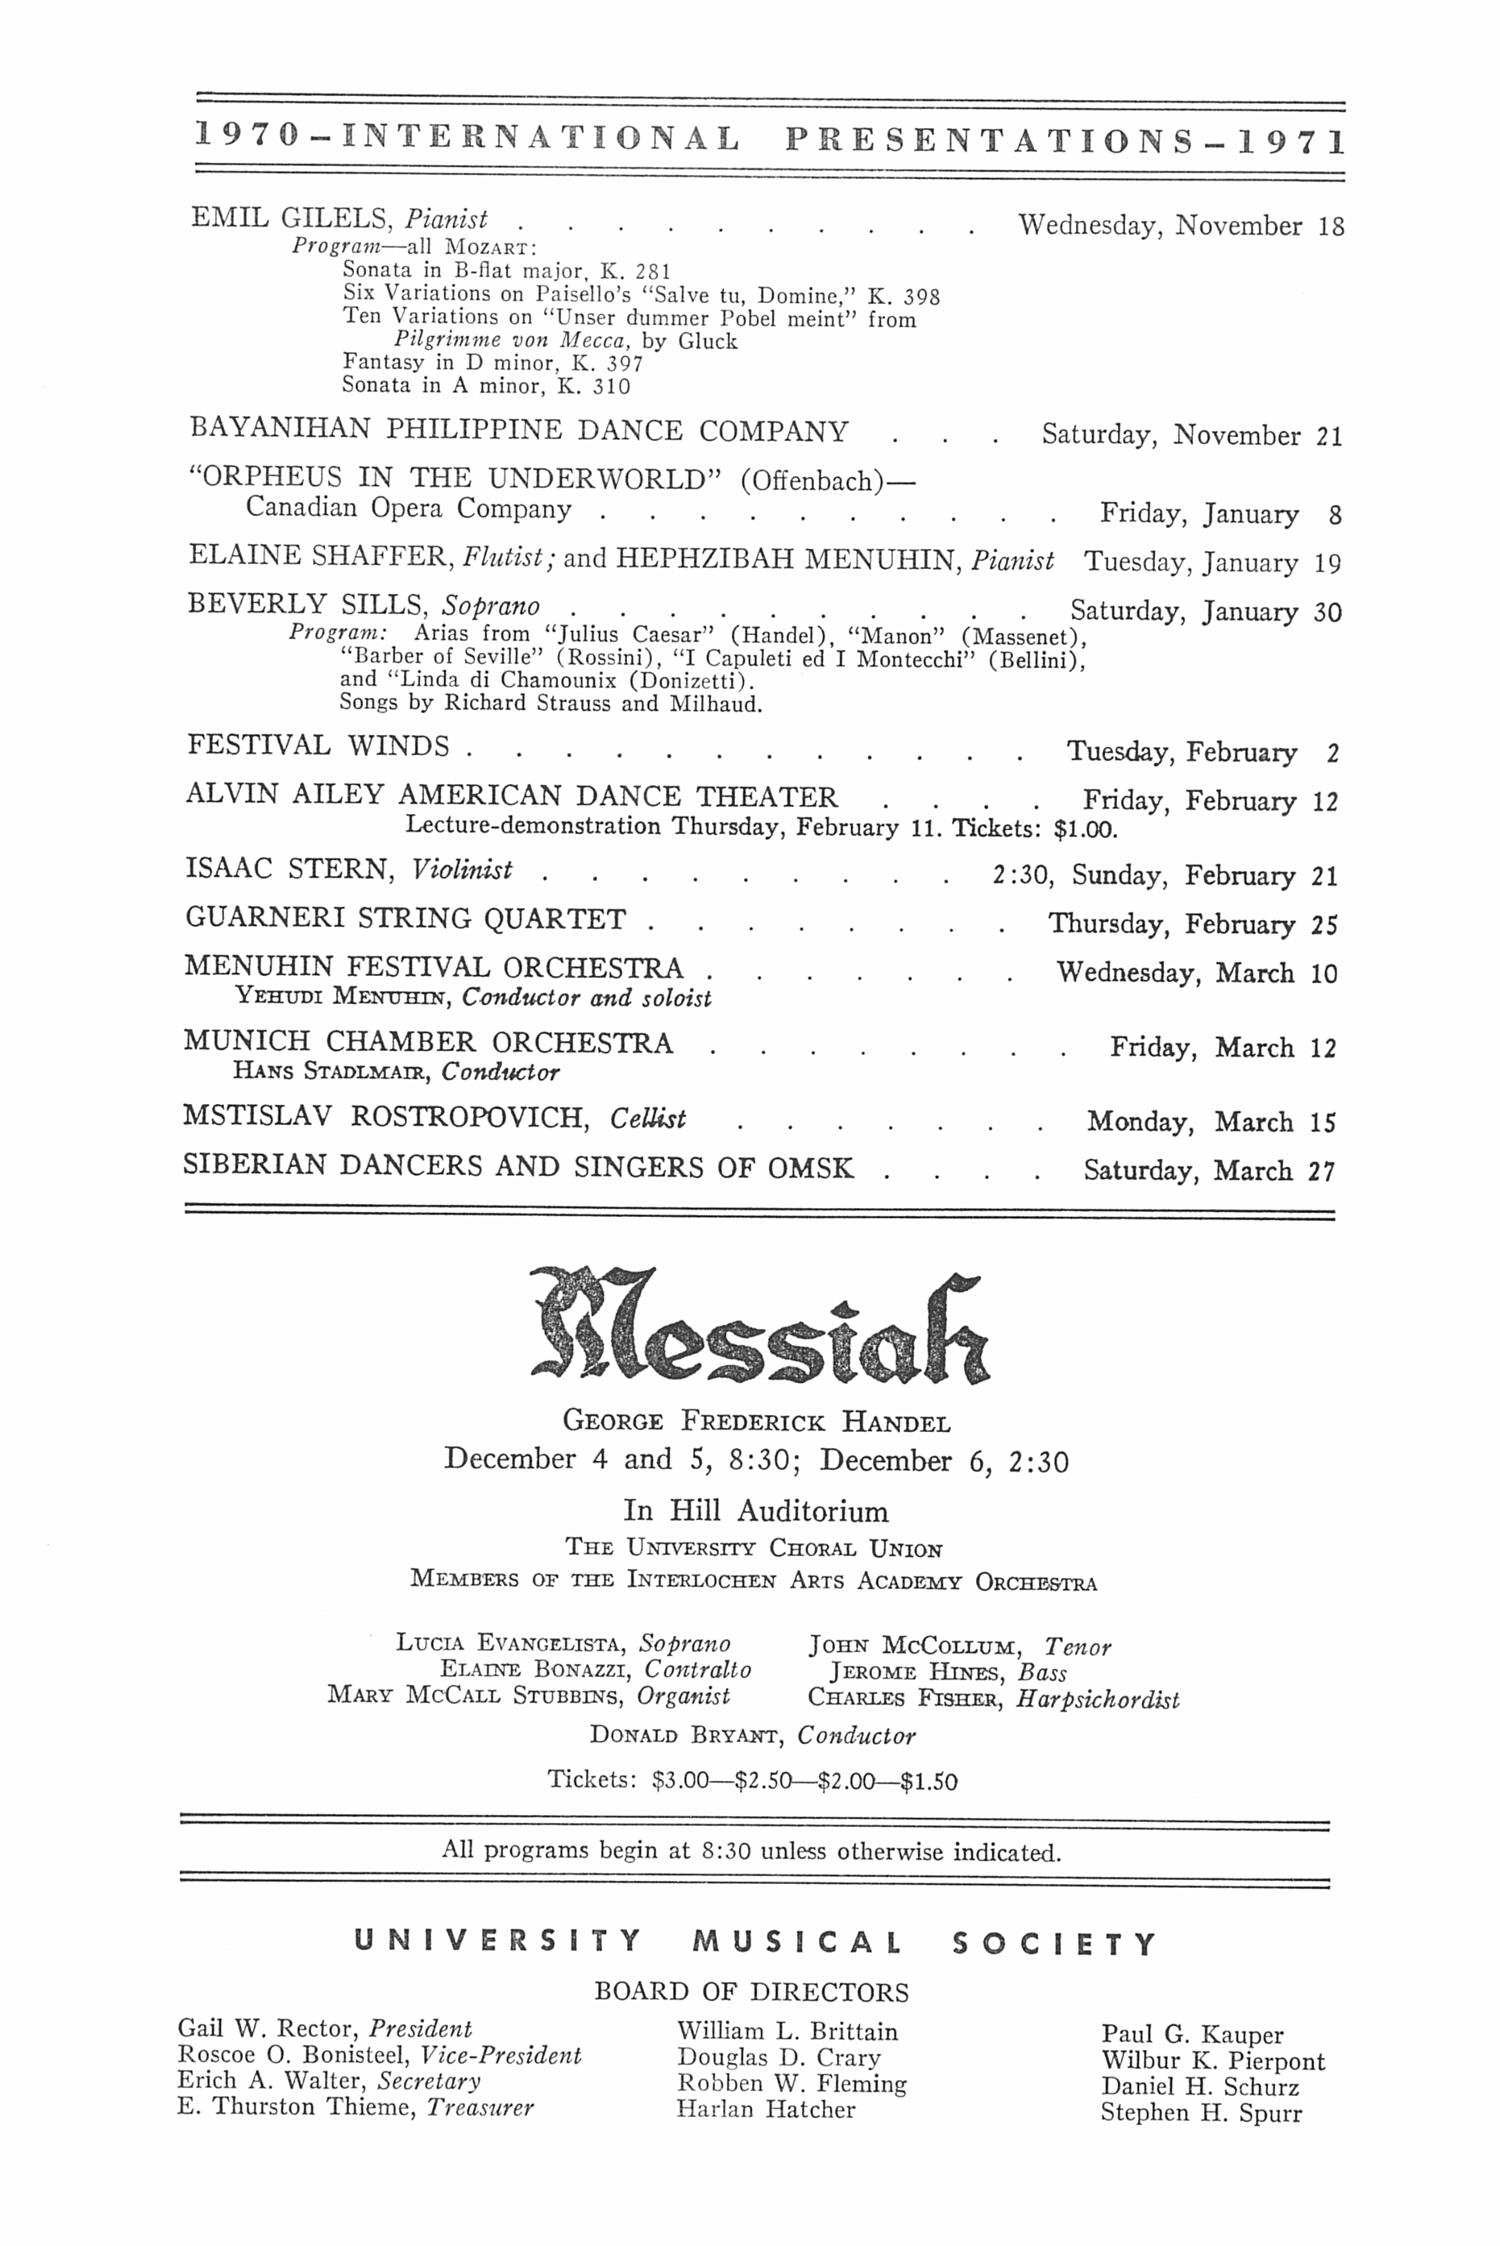 UMS Concert Program, November 13, 1970: Moscow Trio --  image